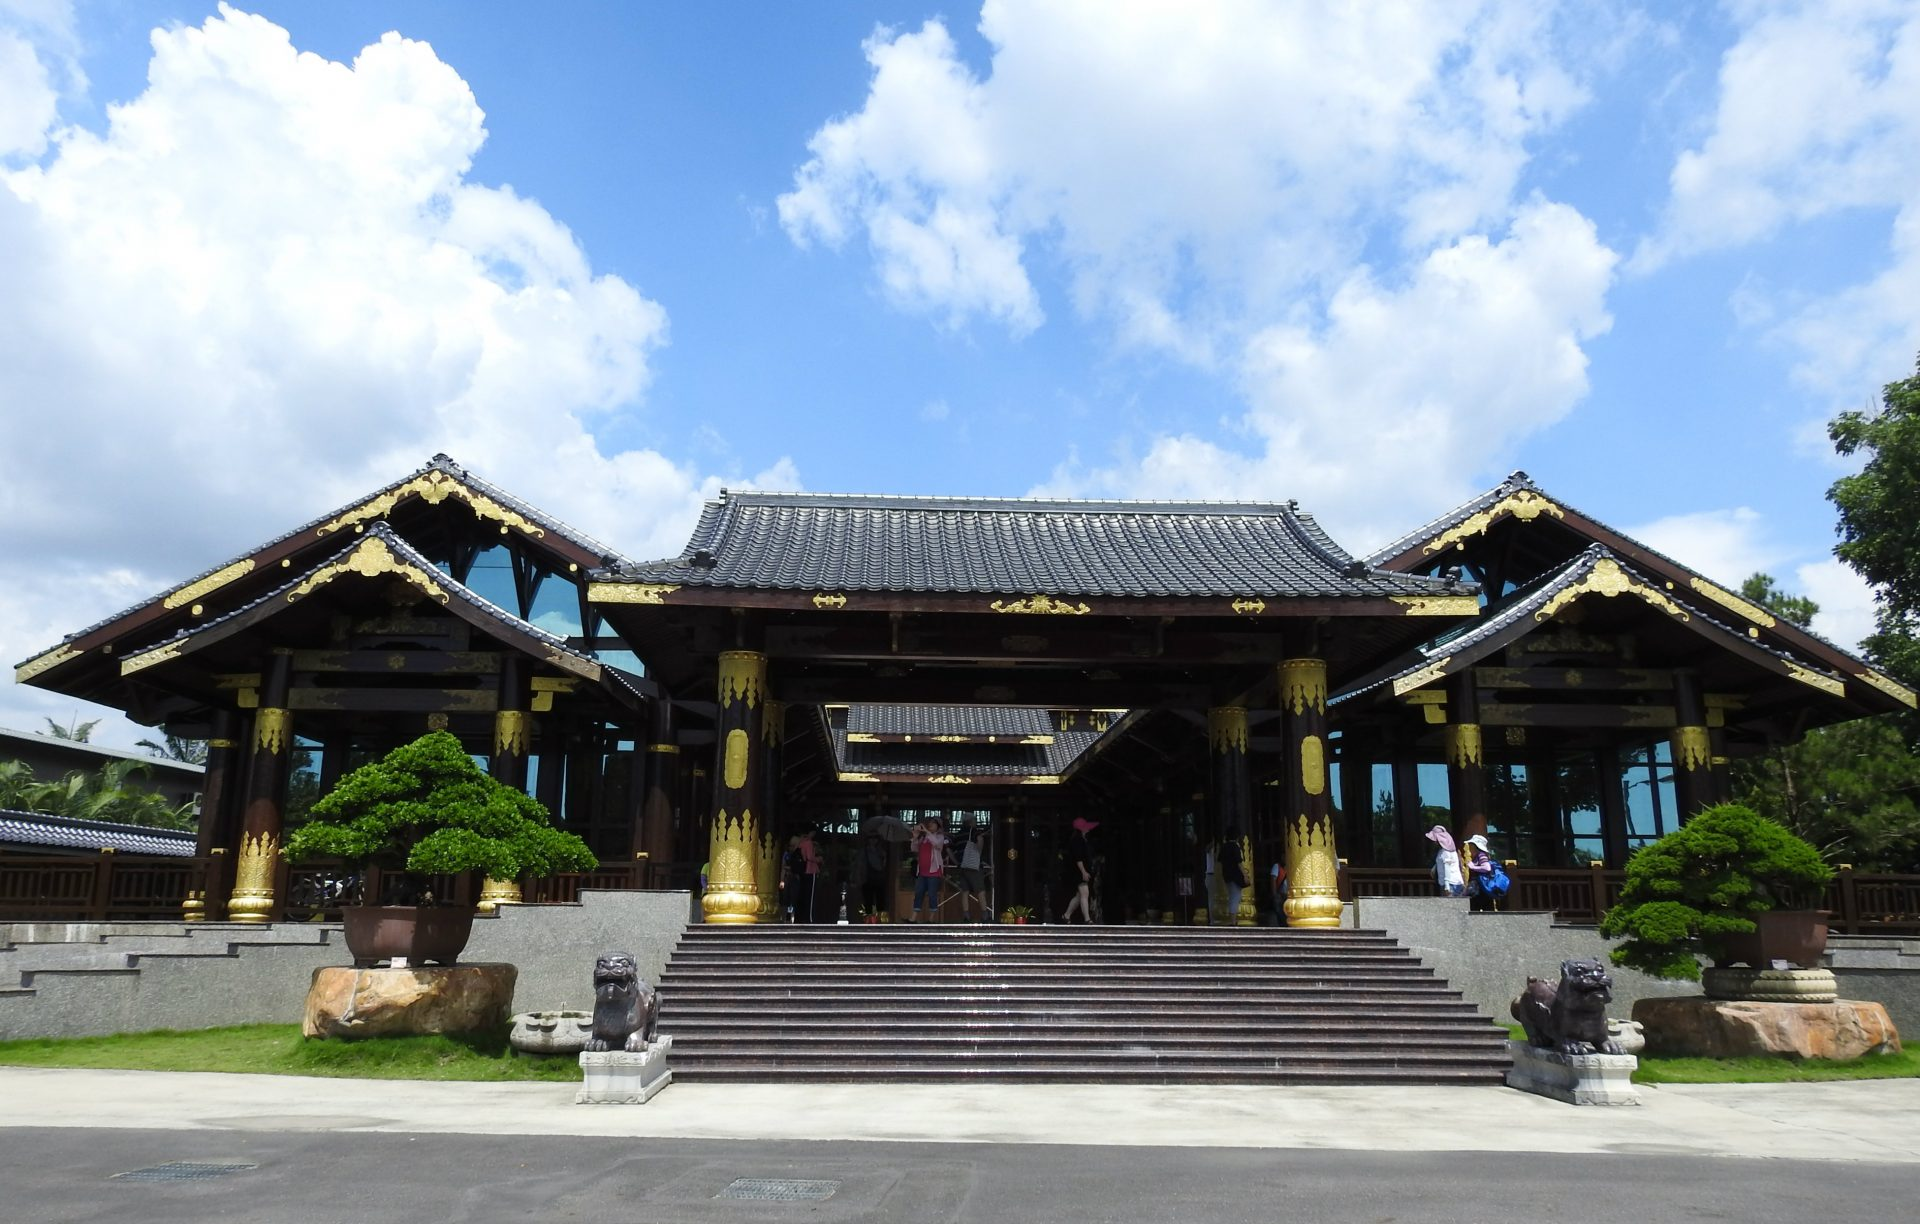 Zitan Palace (紫檀閣) is one of the most striking features of Wann Ying Art Garden (萬景藝苑). (Image: Billy Shyu/ Vision Times)